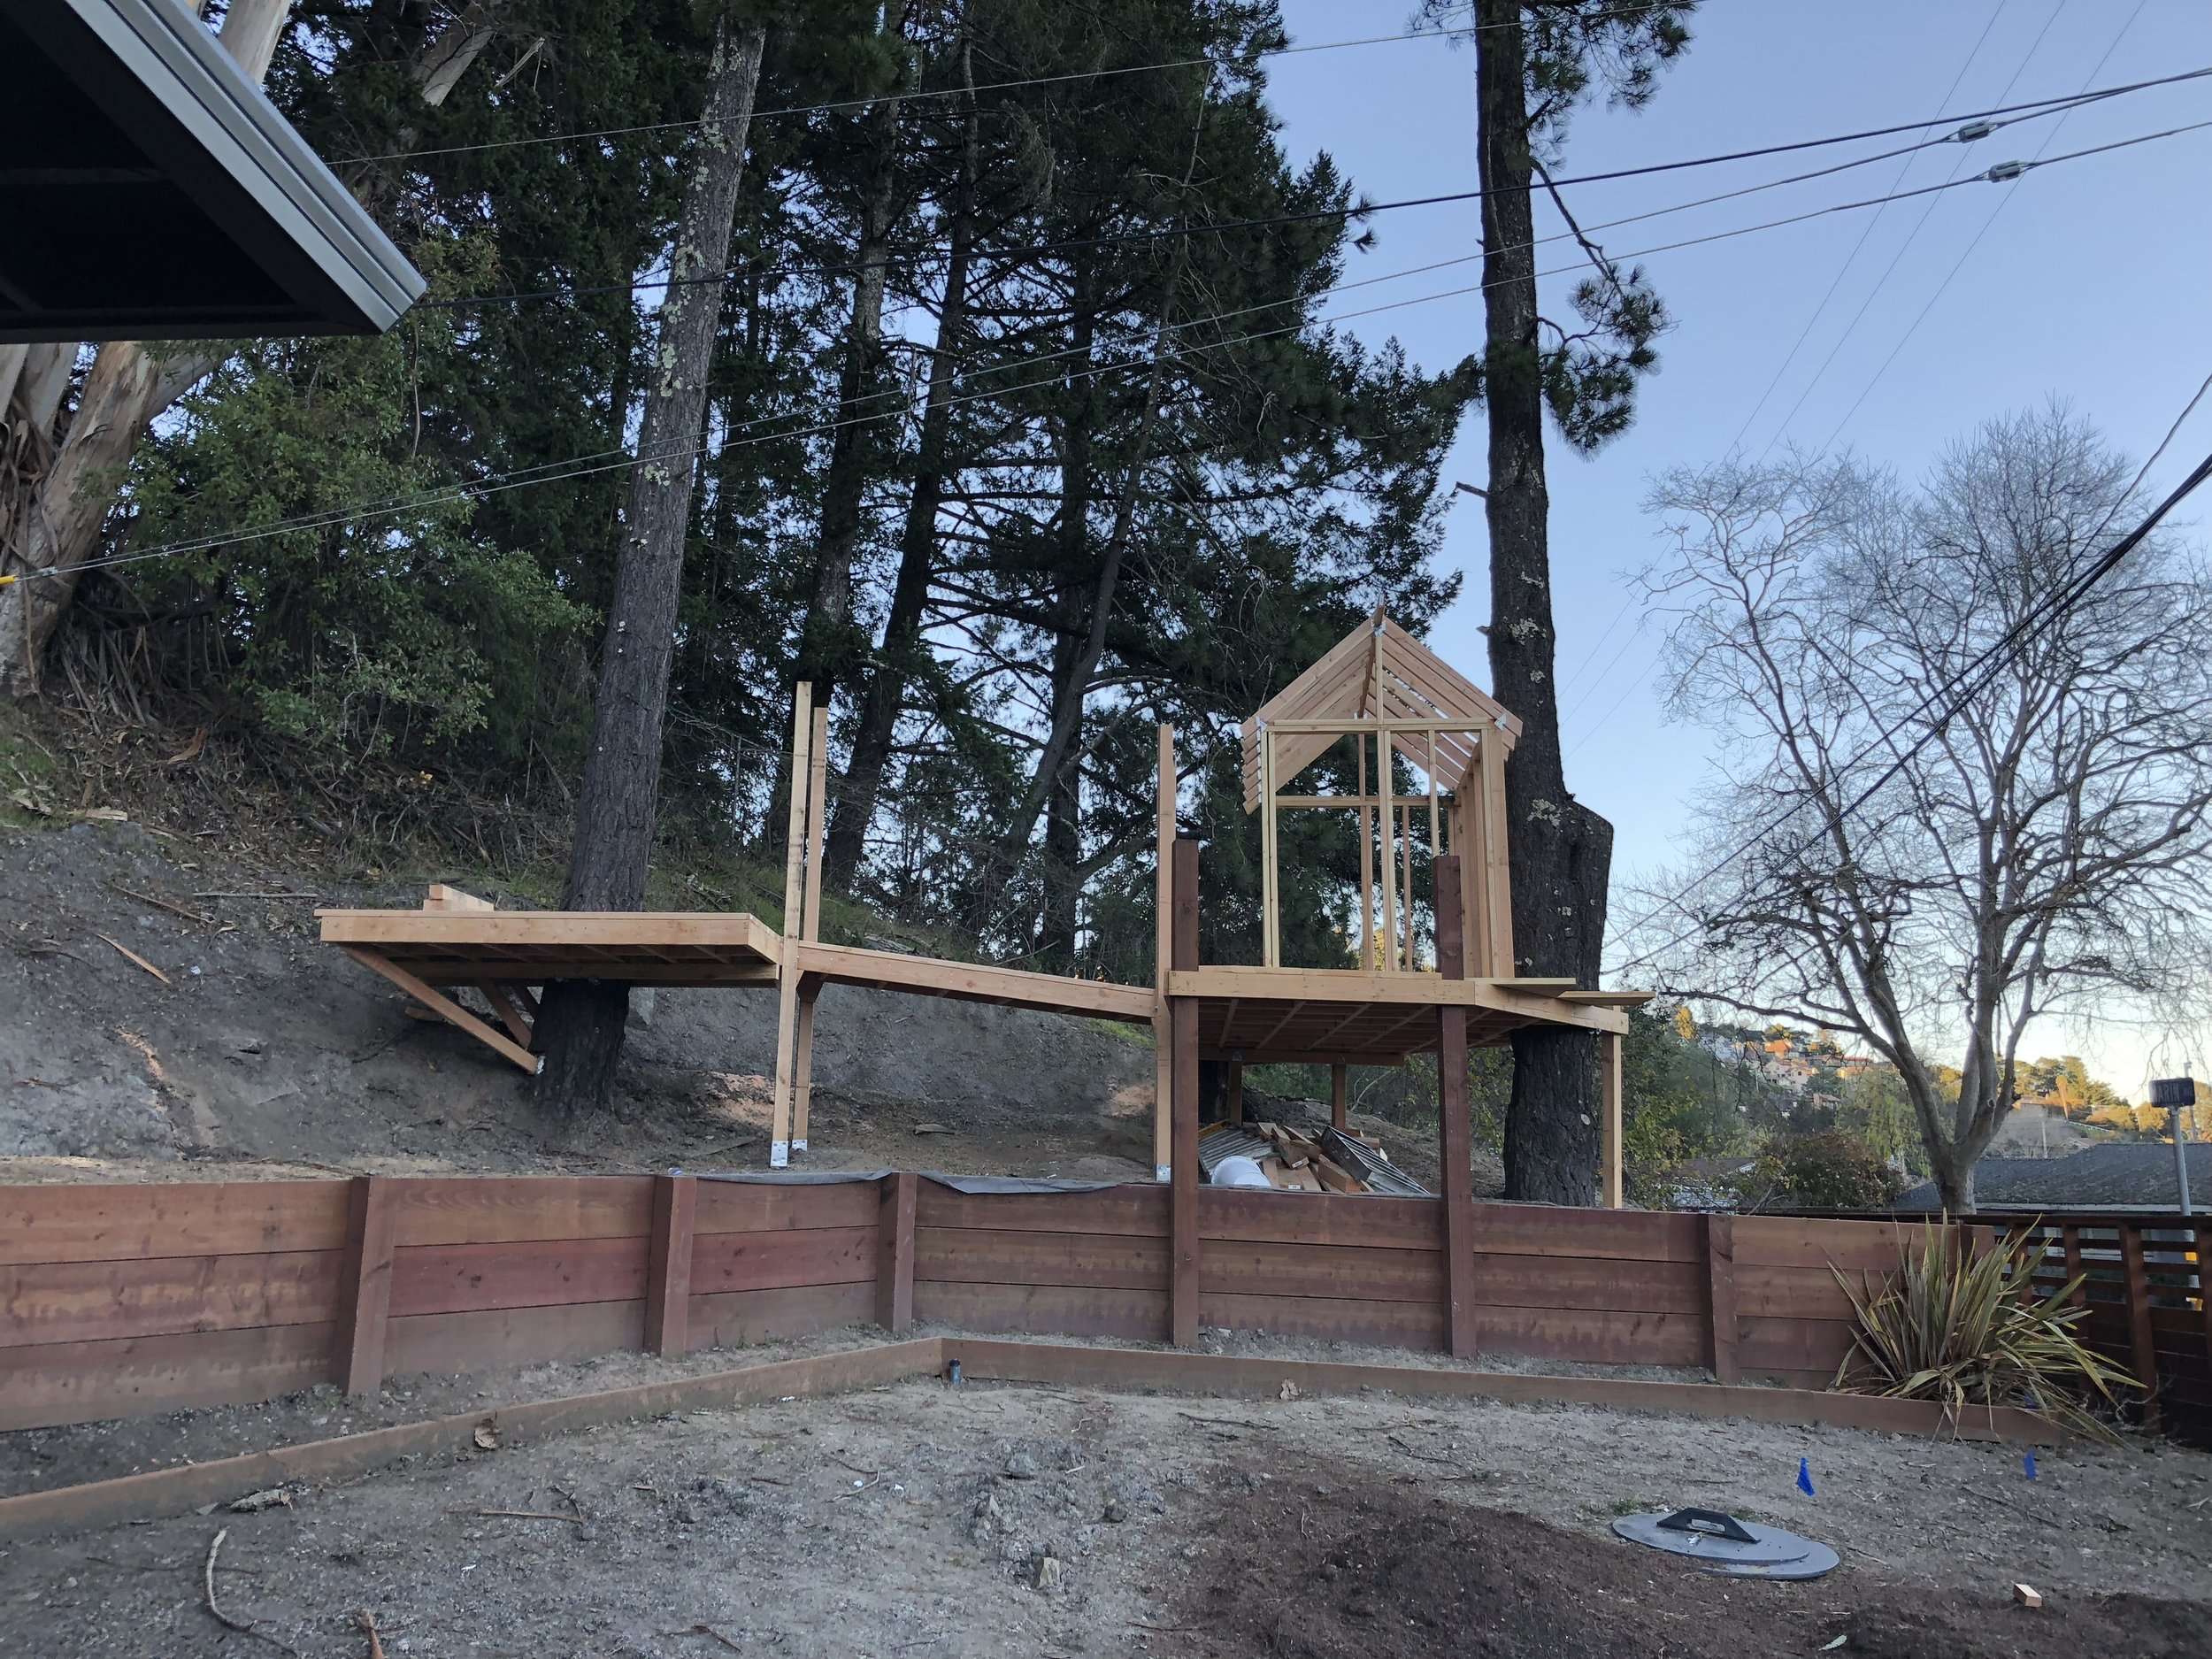 Treehouse in Marin, Mill Valley, Francisco's Gardening and Maintenance - 8 framing and bridge 1.jpeg